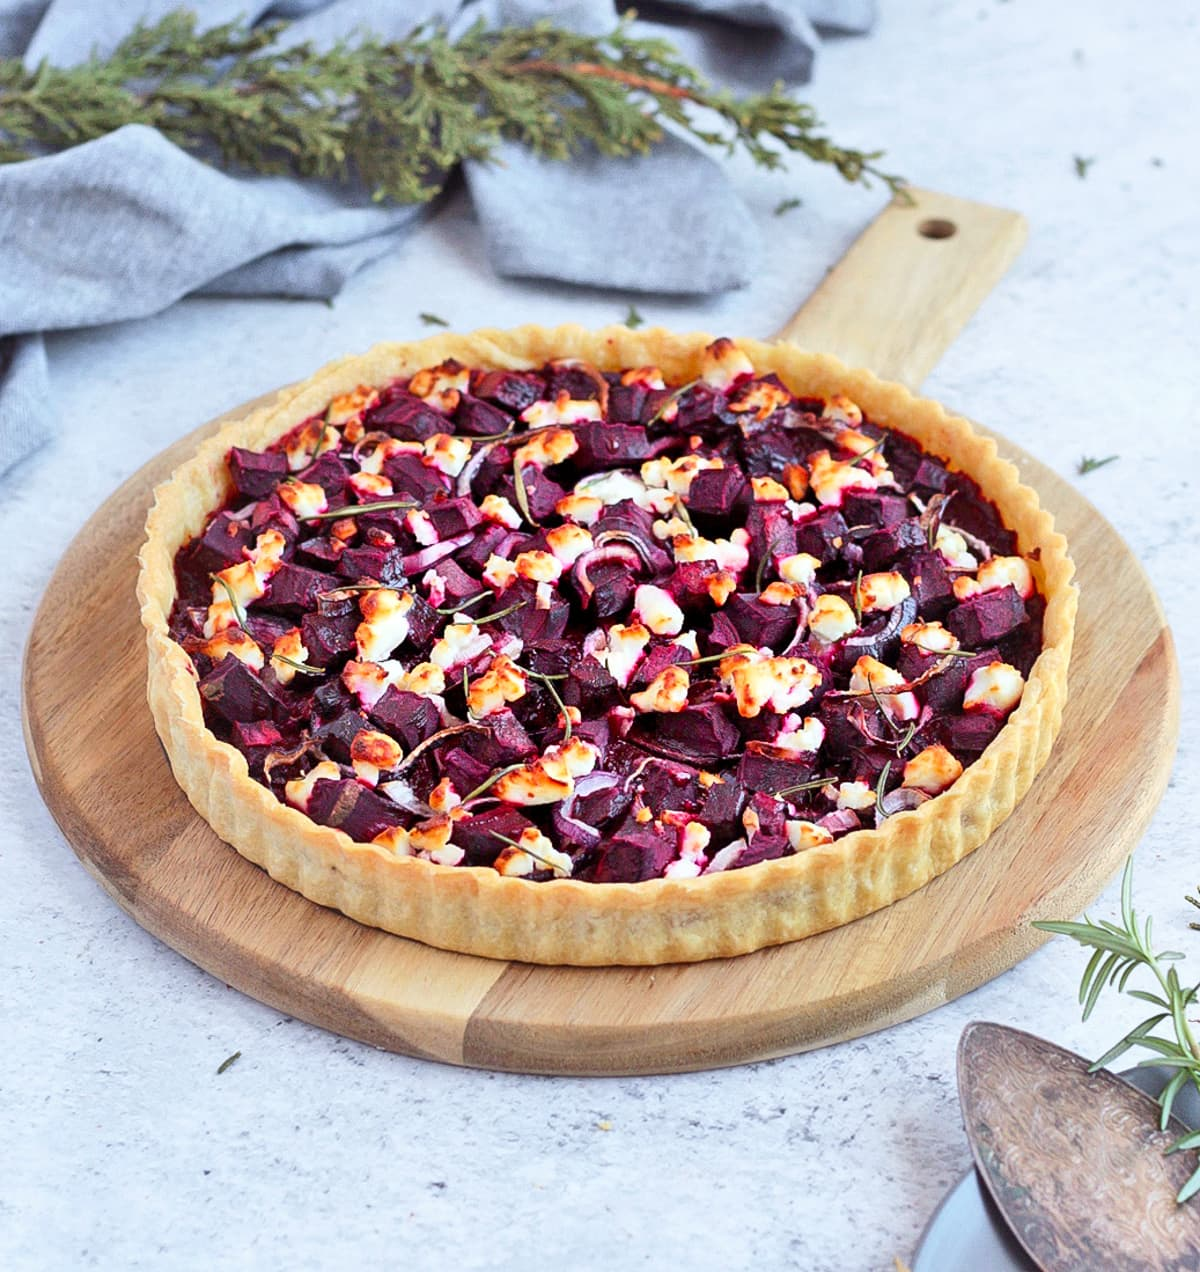 Baked Savoury Tart on a wooden serving board